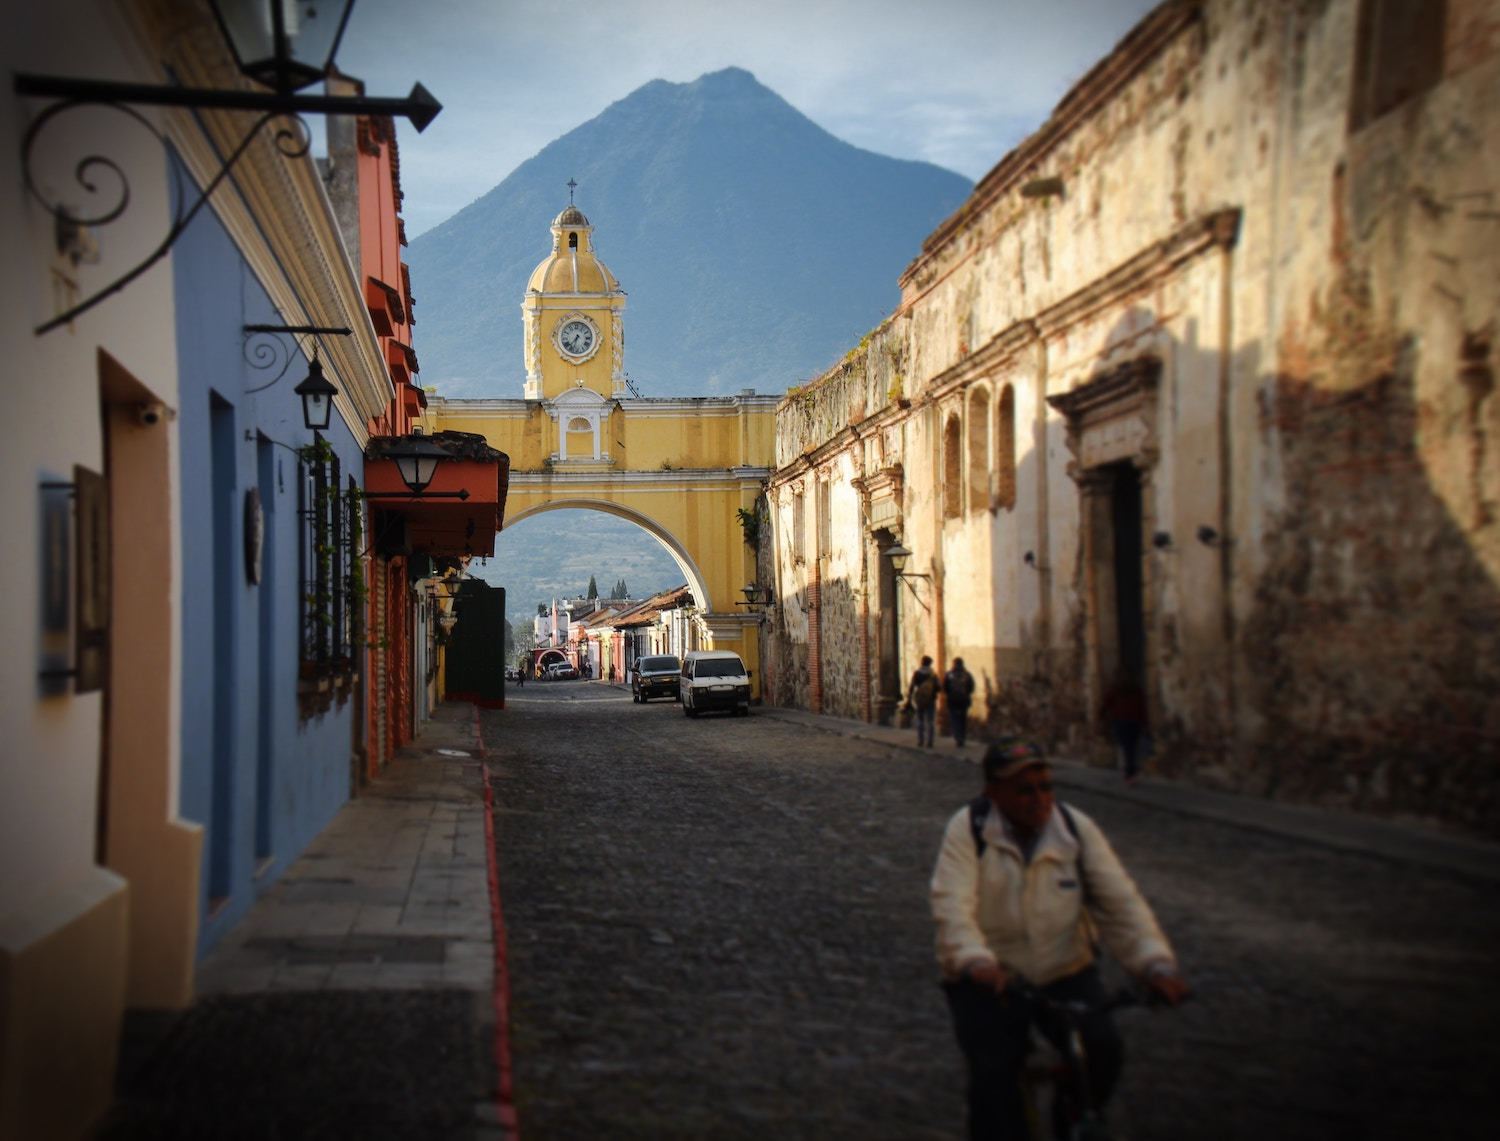 Antigua's Colonial Charm - Get acclimated in Guatemala's capital of culture, just a 40 minute drive from the international airport. The UNESCO protected town of Antigua is a colorful colonial stunner flanked by three majestic volcanoes and filled with friendly people.It's easy to wile away a few days strolling through the cobbled streets, admiring the pastel facades, and soaking up local life in plazas watched over by 300 year old churches. Look a little deeper, and you'll find some of Guatemala's top museums, best restaurants, lively bars, and boutique shops. Outside Antigua, coffee farms and volcanoes offer natural beauty and outdoor adventure.